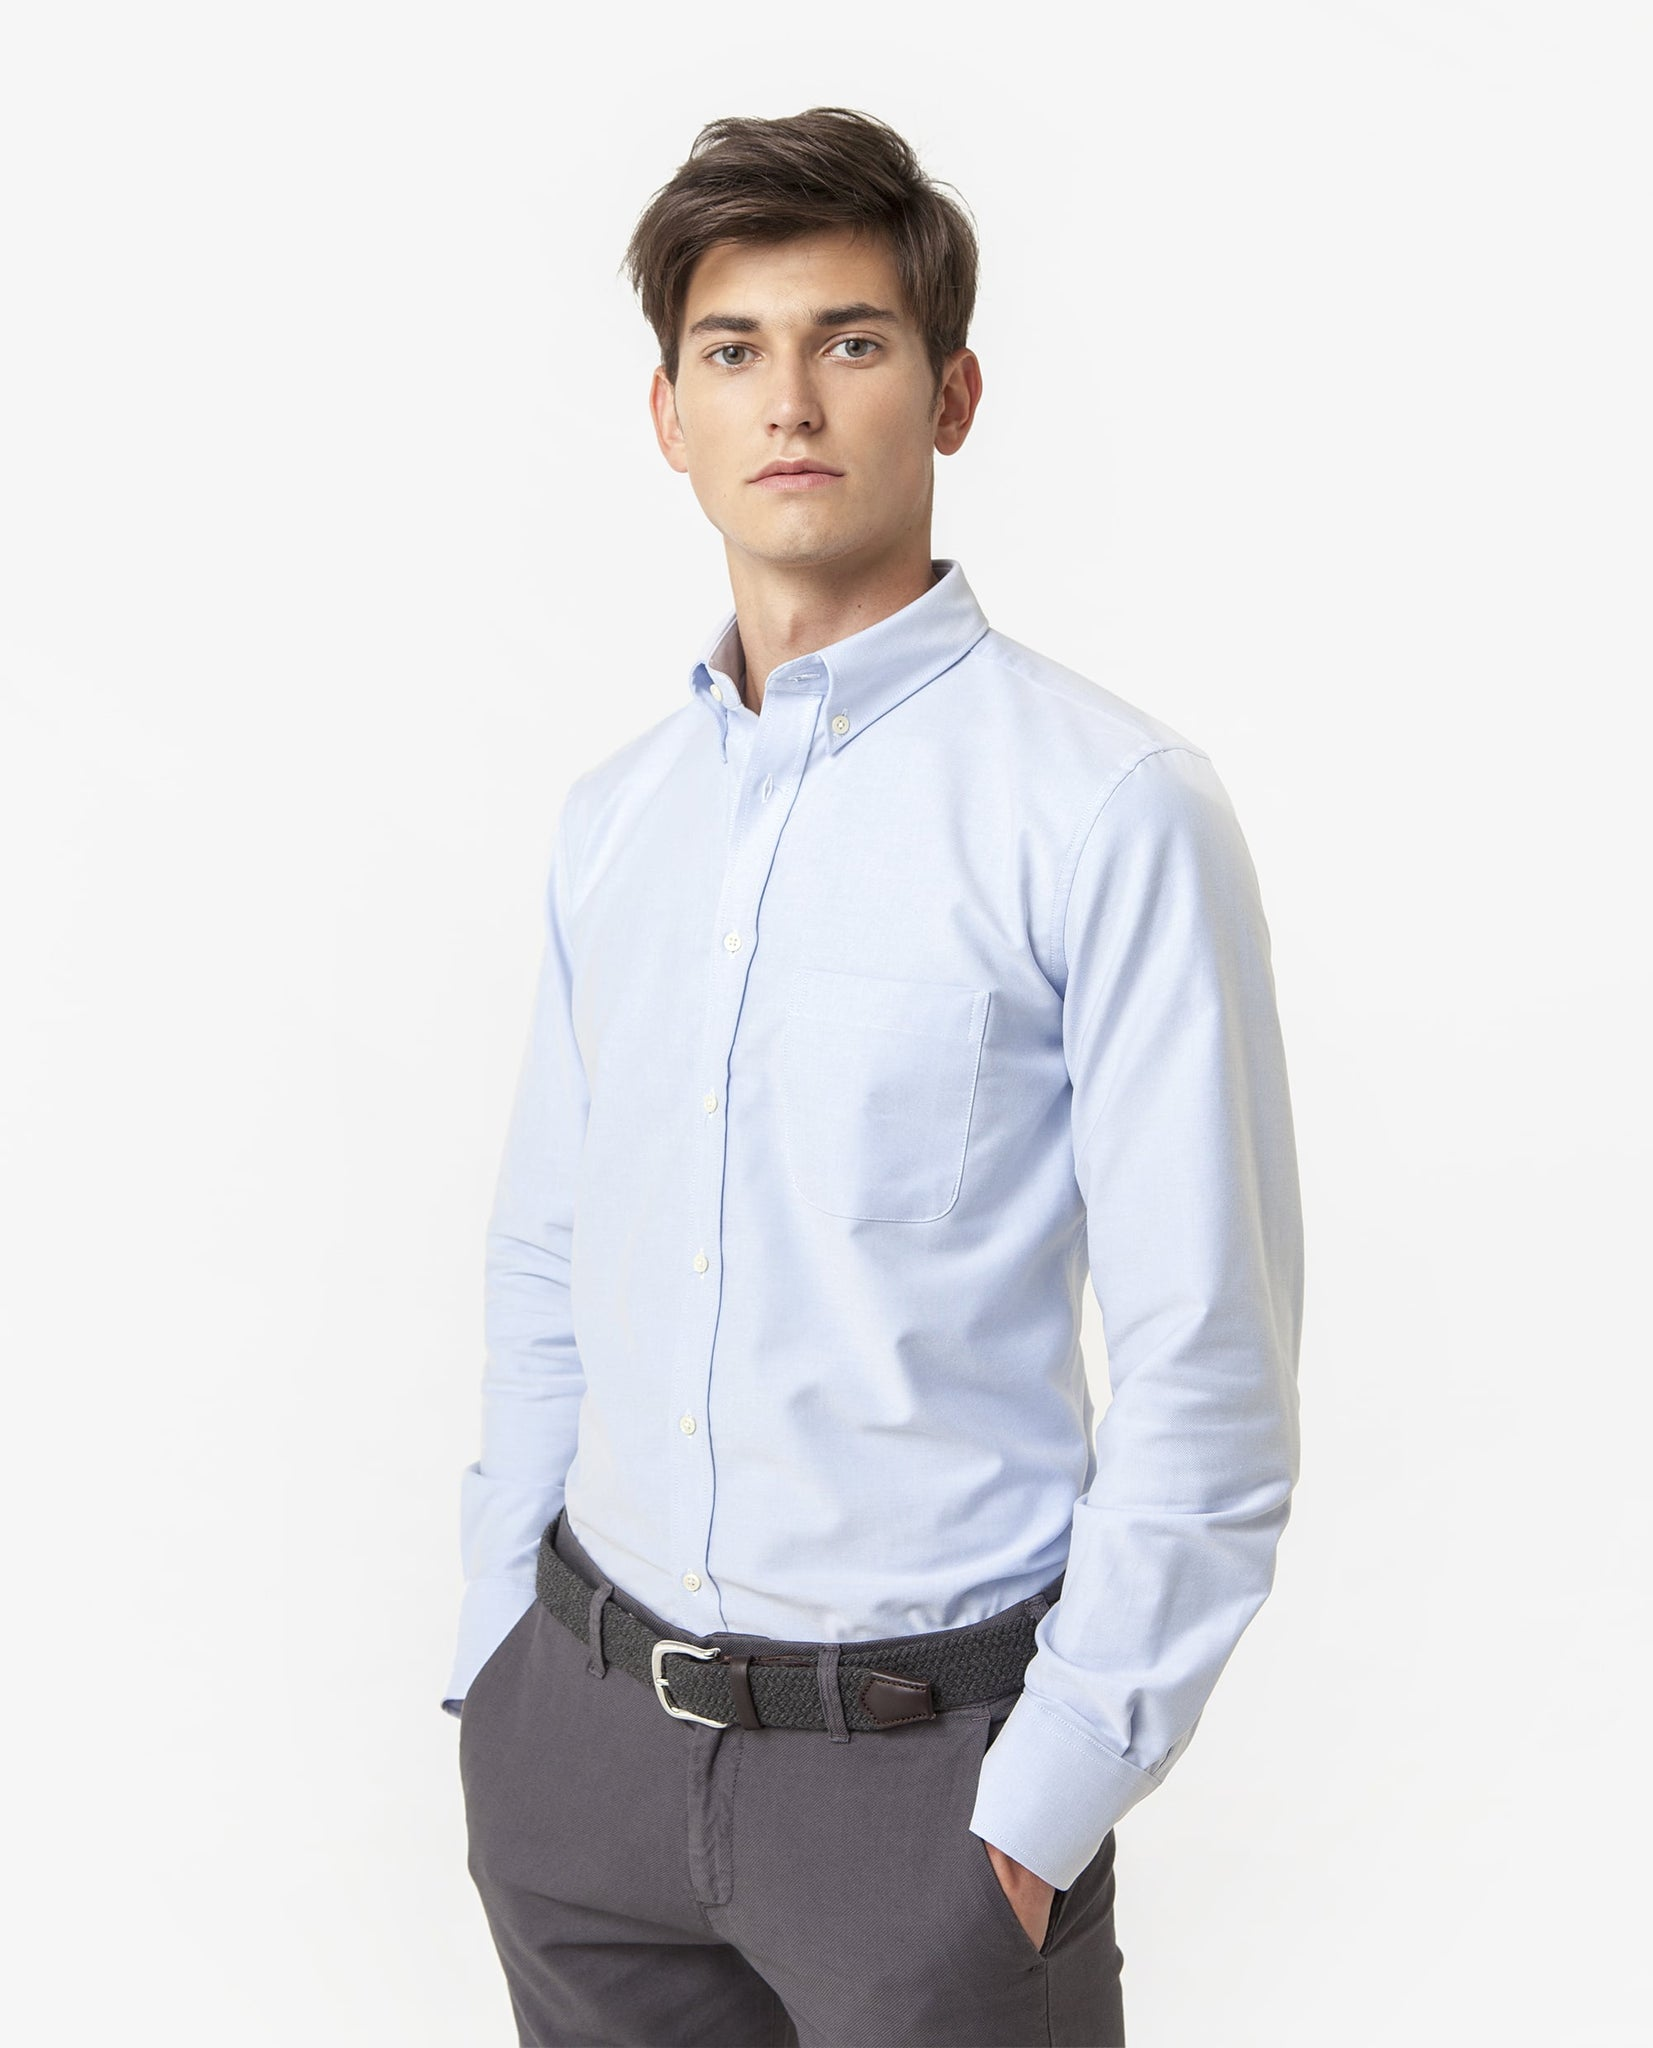 Camisa Oxford Bolsillo Azul Claro OUTLET